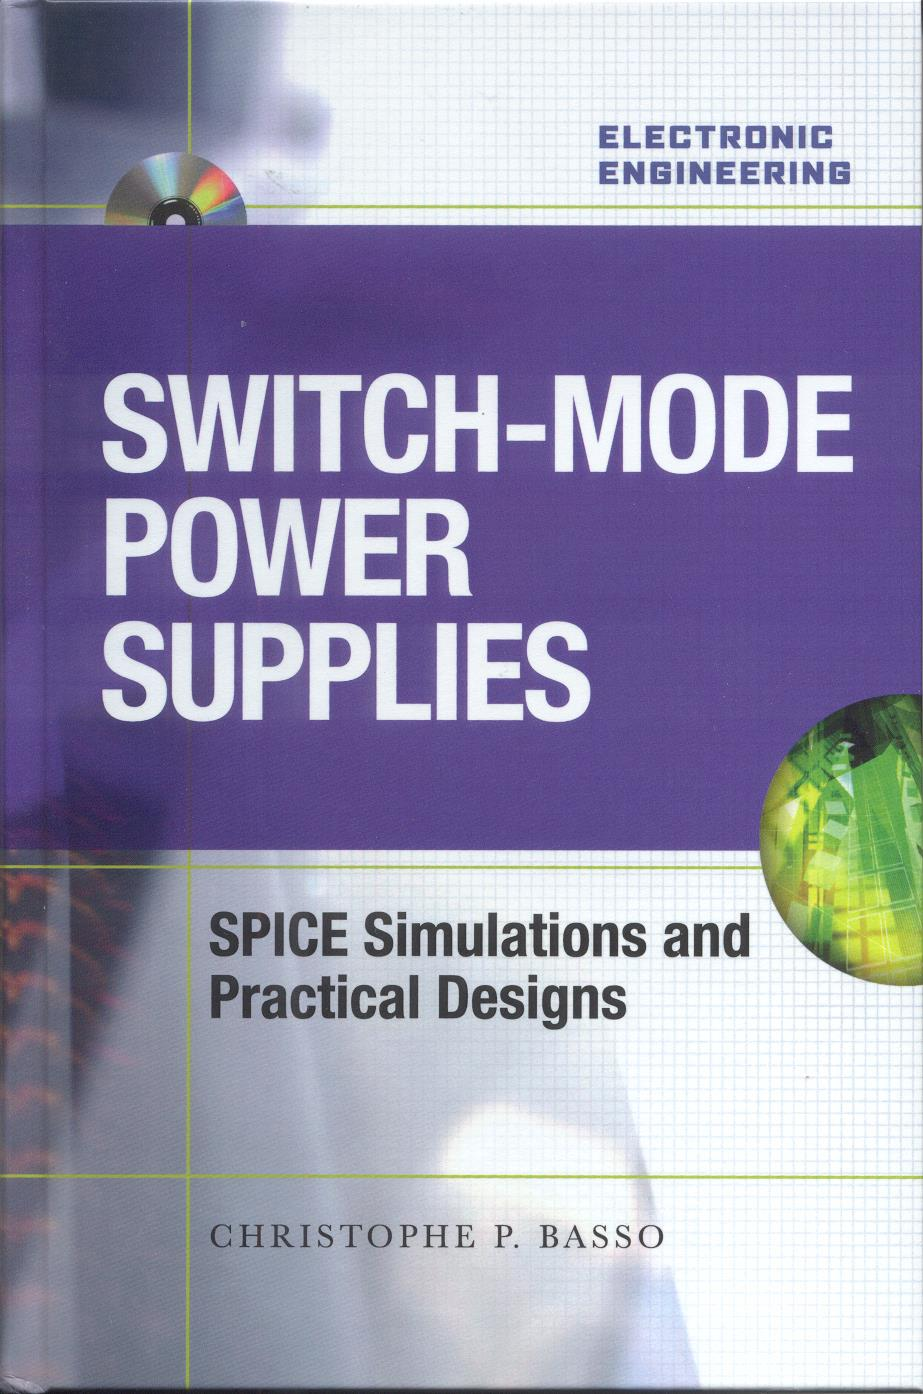 Spice Fast Analytical Techniques For Electrical And Electronic Circuits Book